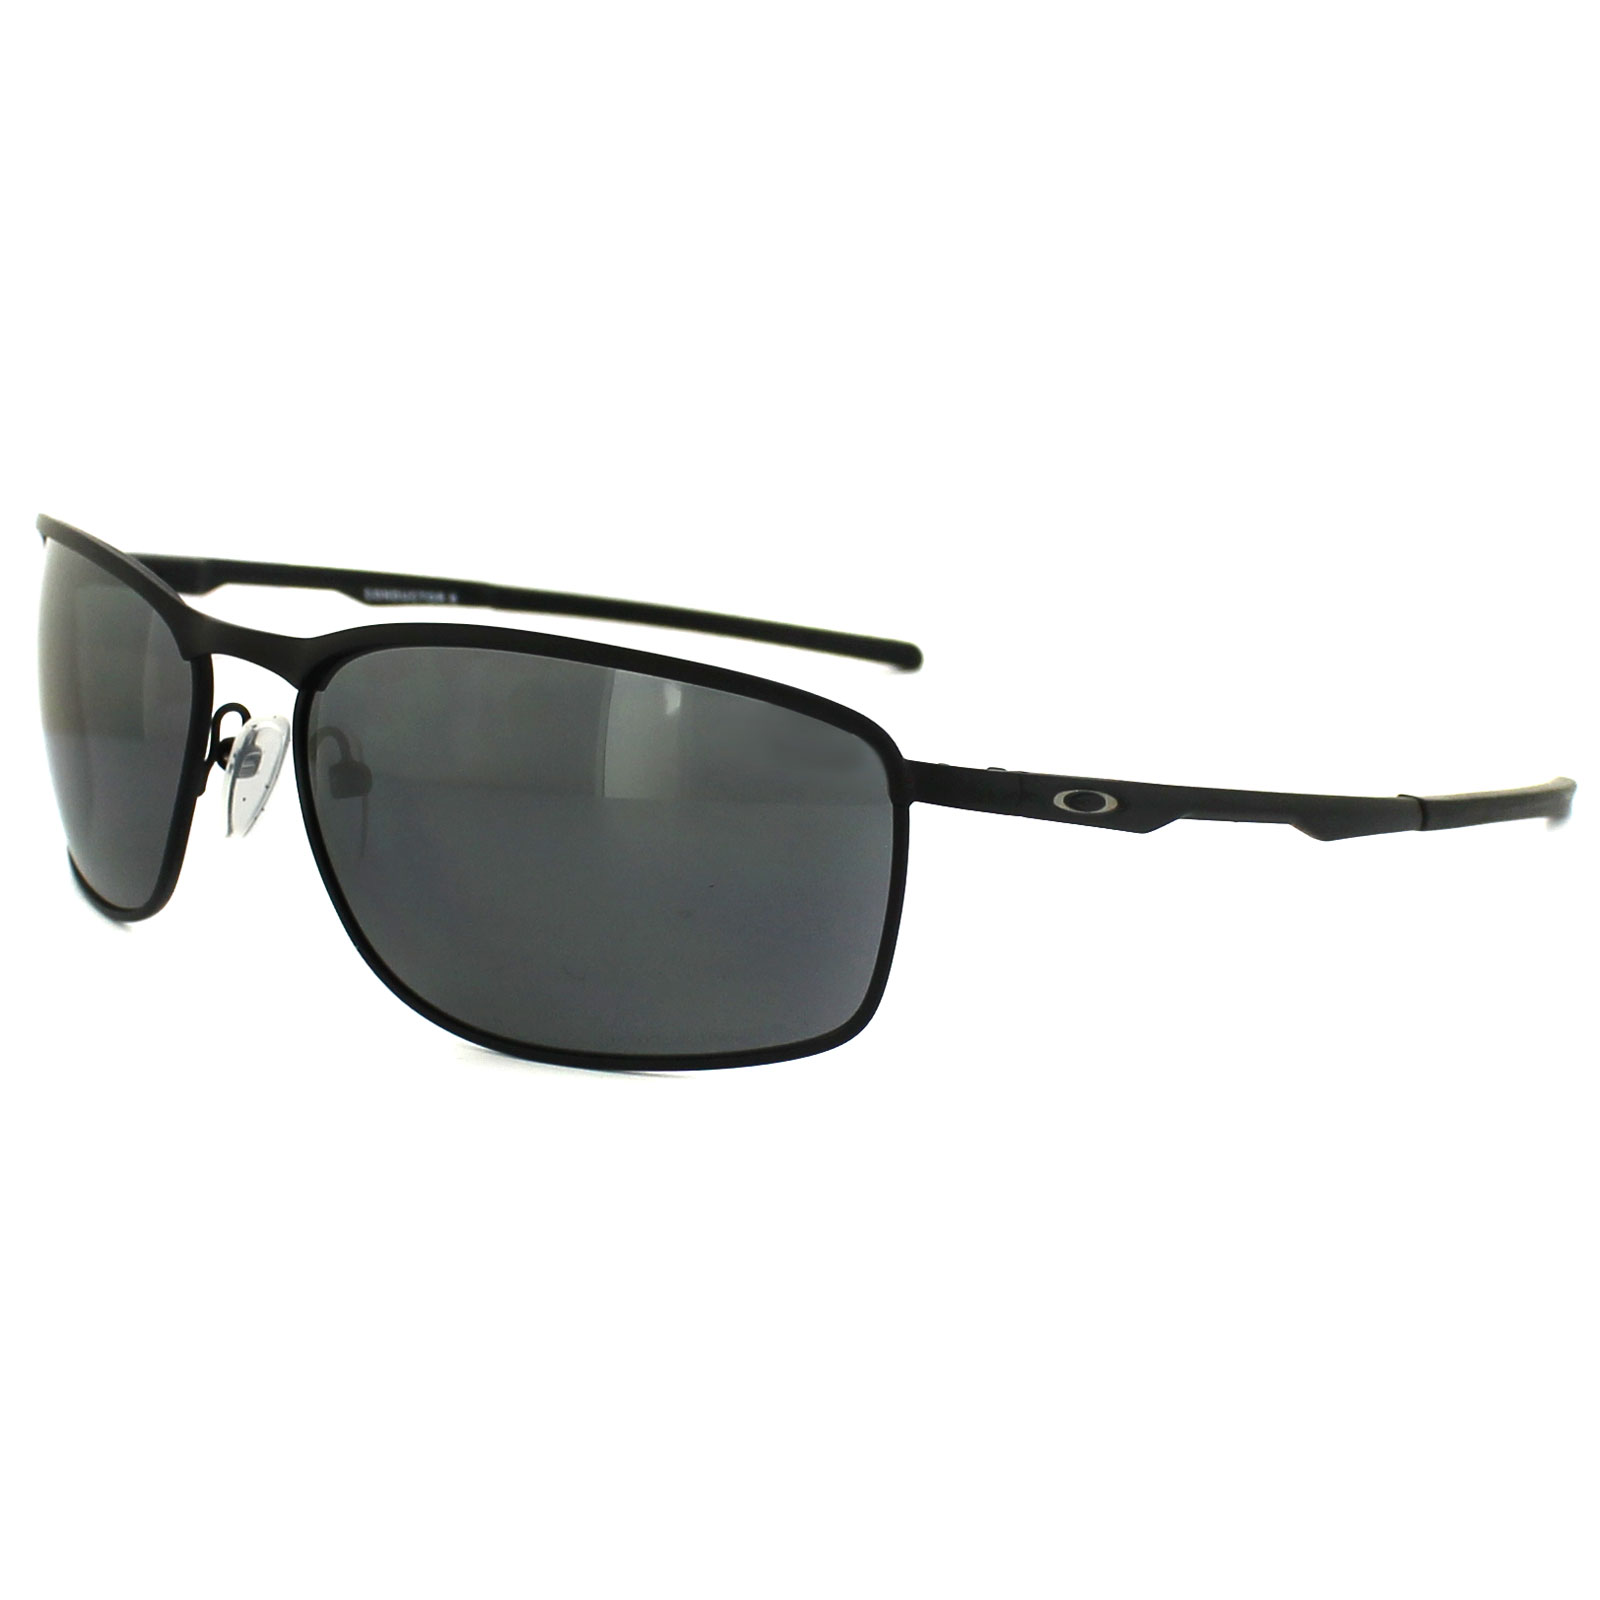 ed2603478cb Sentinel Oakley Sunglasses Conductor 8 OO4107-02 Matt Black Black Iridium  Polarized